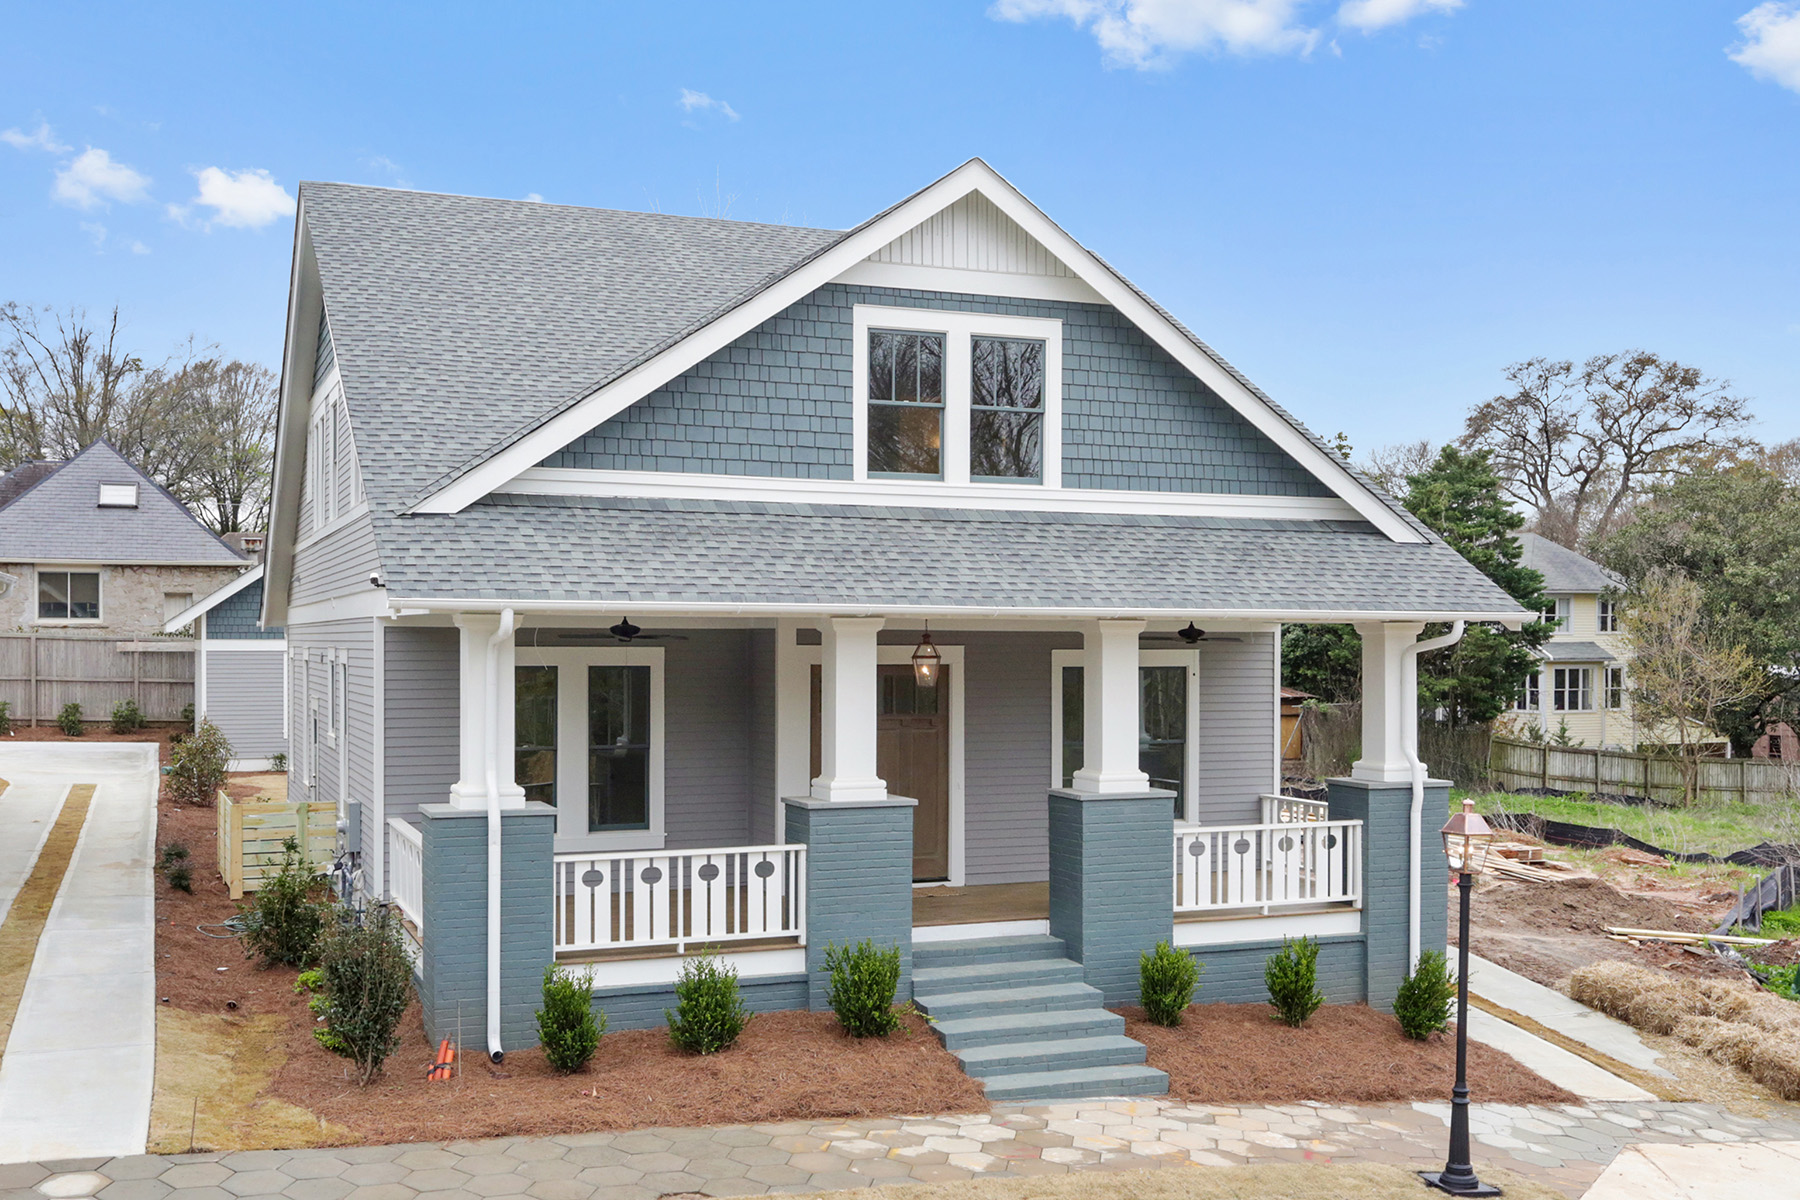 Single Family Home for Sale at New Construction Bungalow in Inman Park Near Atlanta Beltline 204 Haralson Ln Atlanta, Georgia 30307 United States